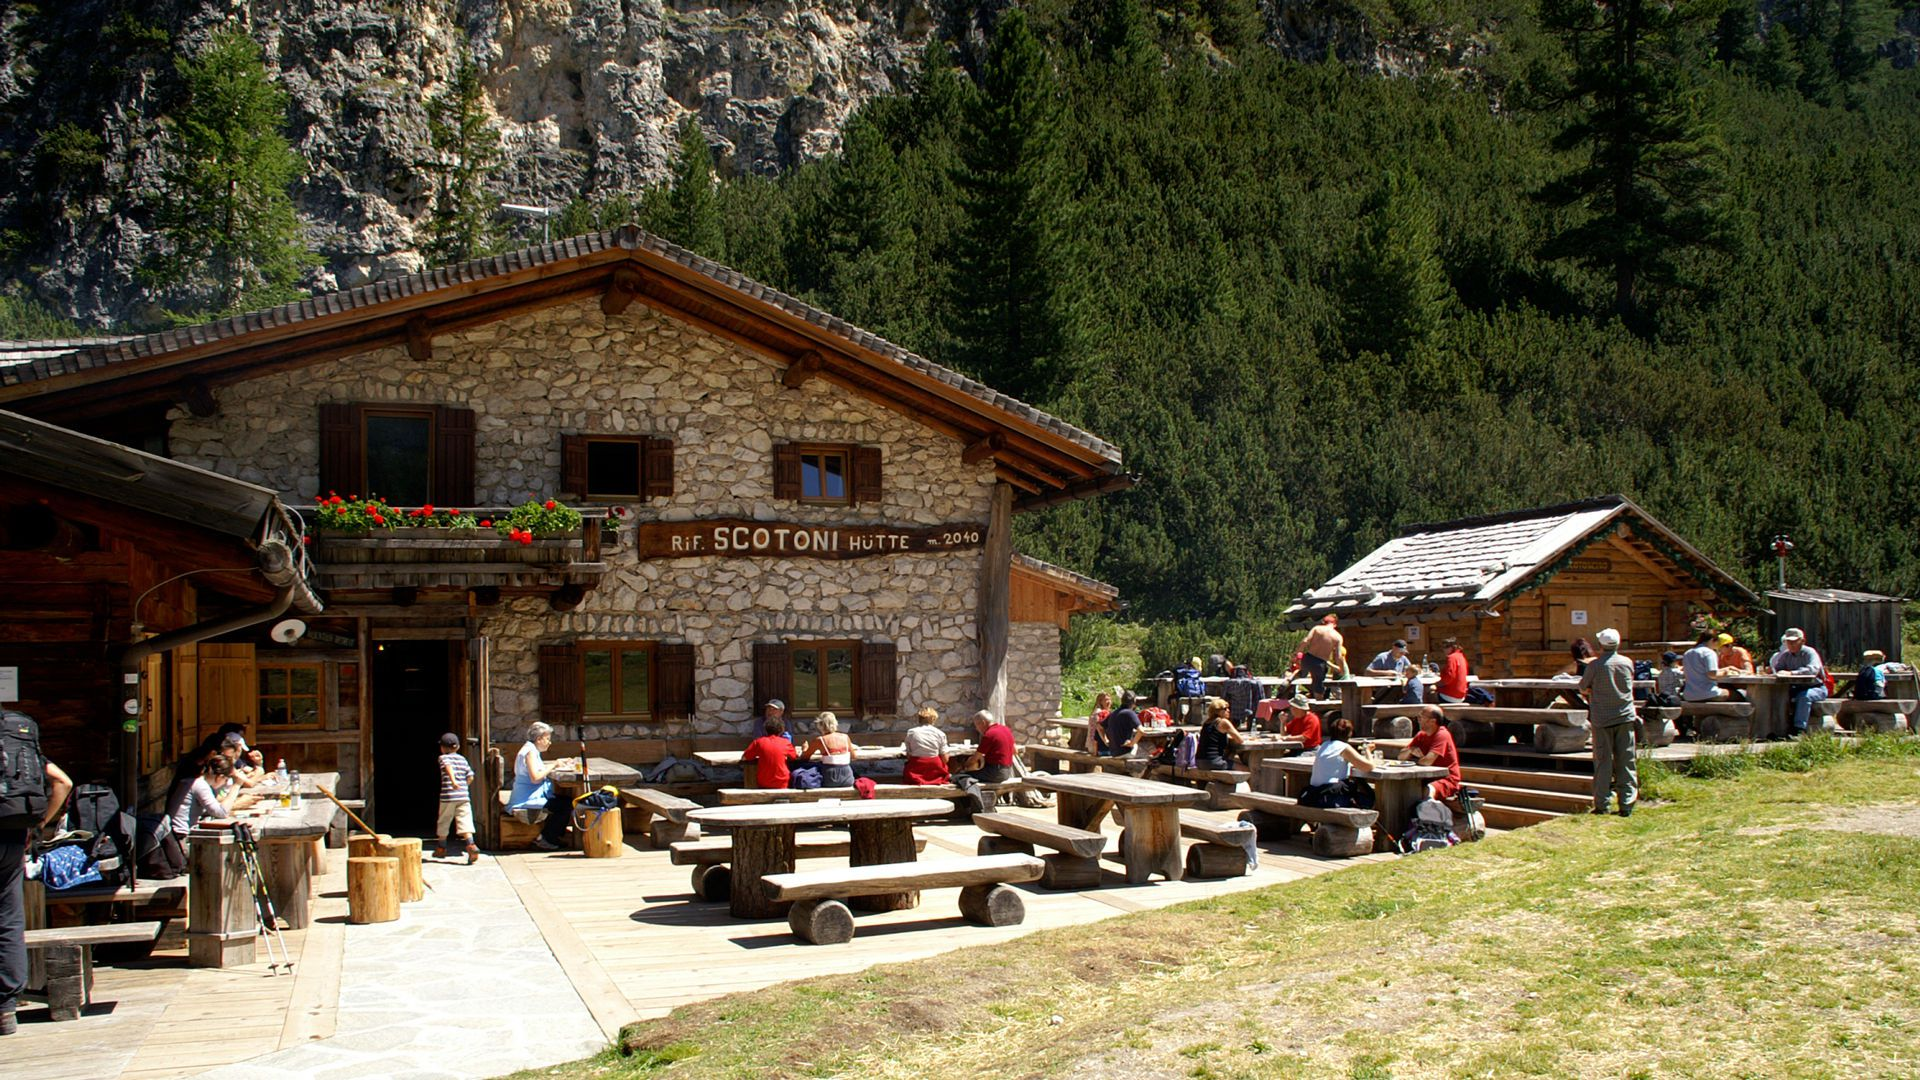 Image: Our location in San Cassiano in the Dolomites